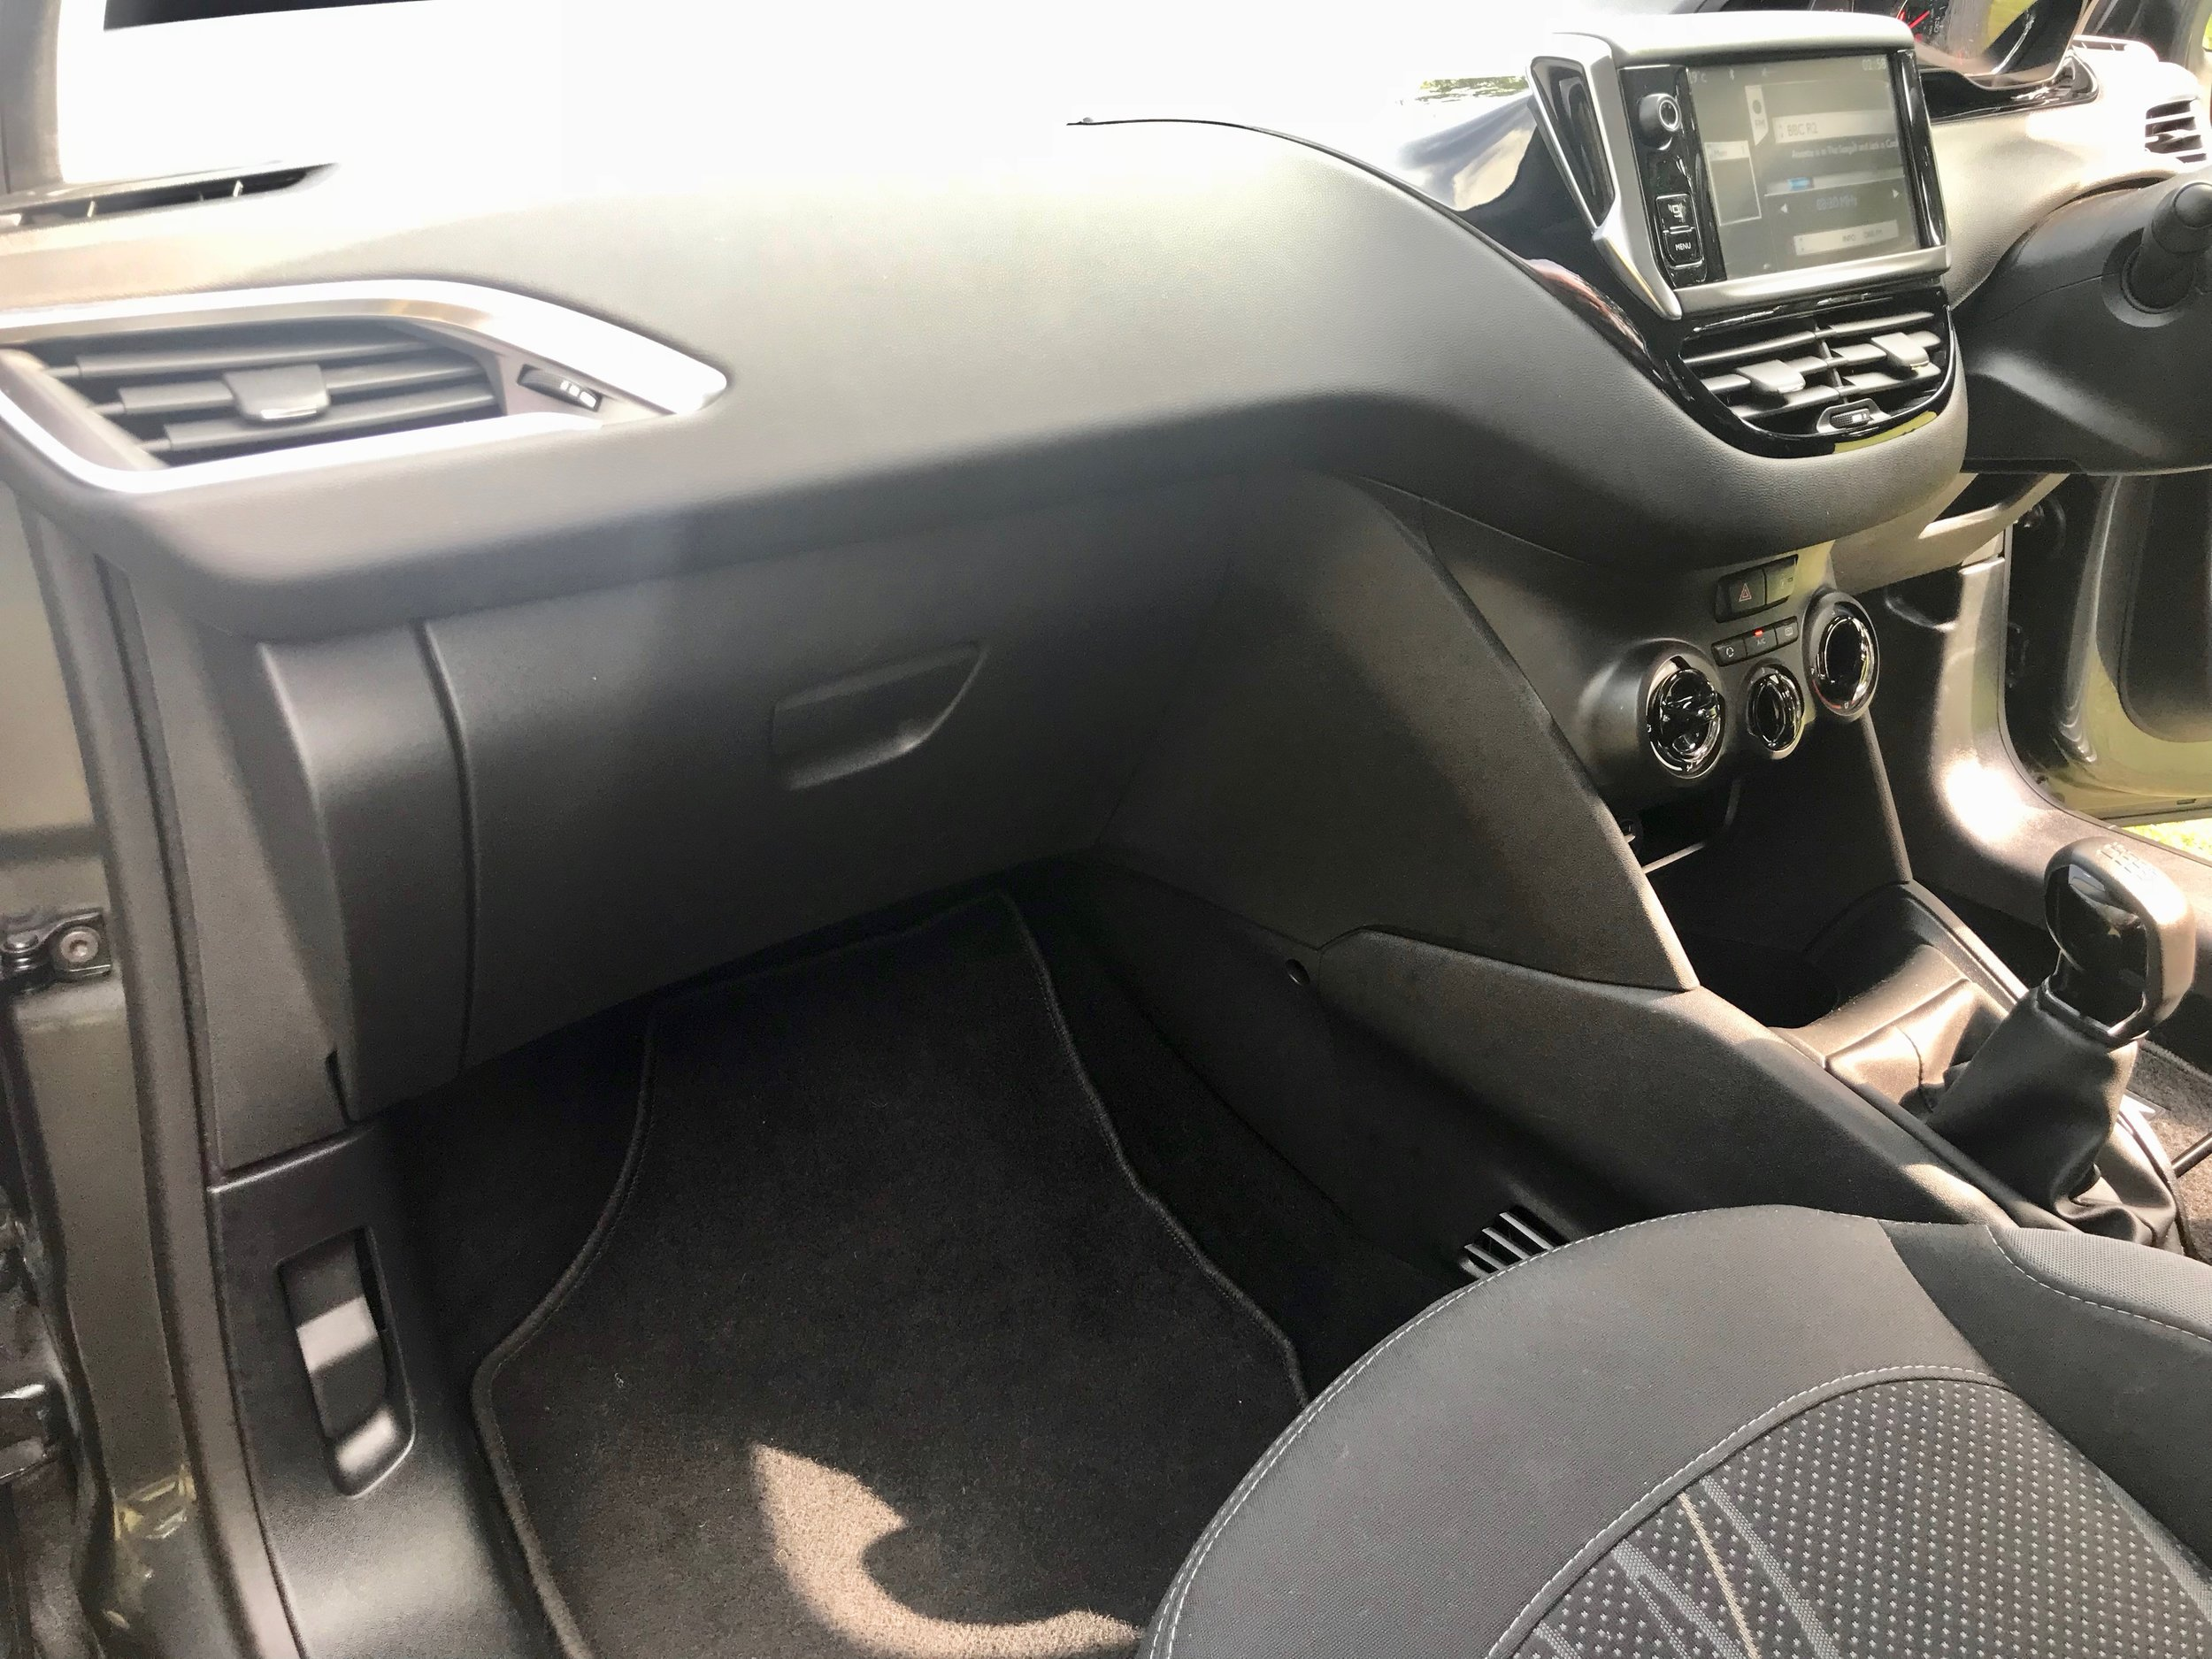 peugeot-208-vti-active-forsale-regalmotion-regalpreowned-usedcar-redditch-bromsgrove-worcestershire-6479-43.jpeg